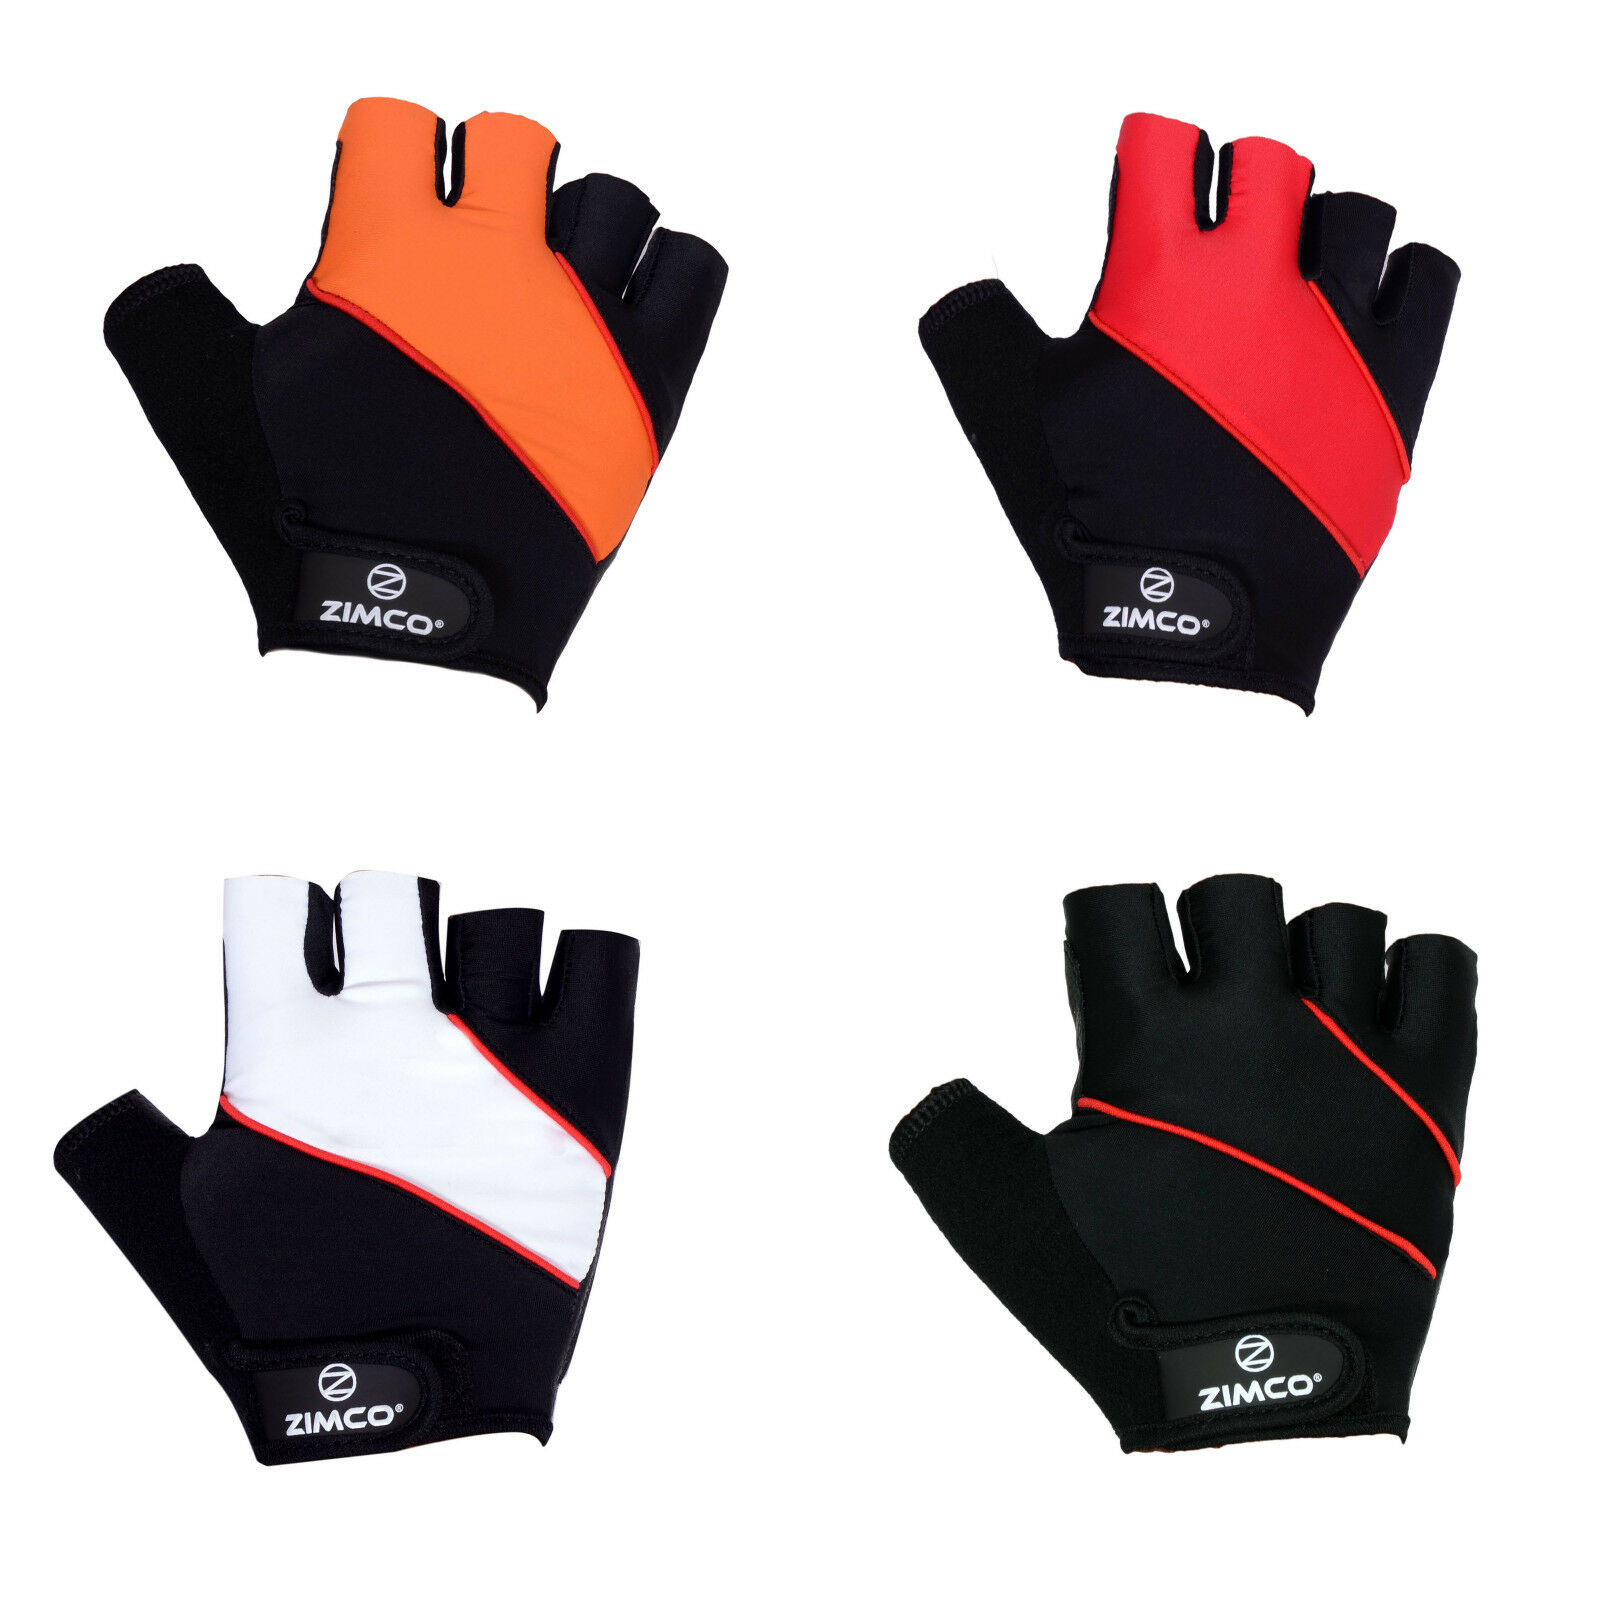 Zimco Elite Cycling Gloves Max Grip Comfortable Racing Gloves Blue